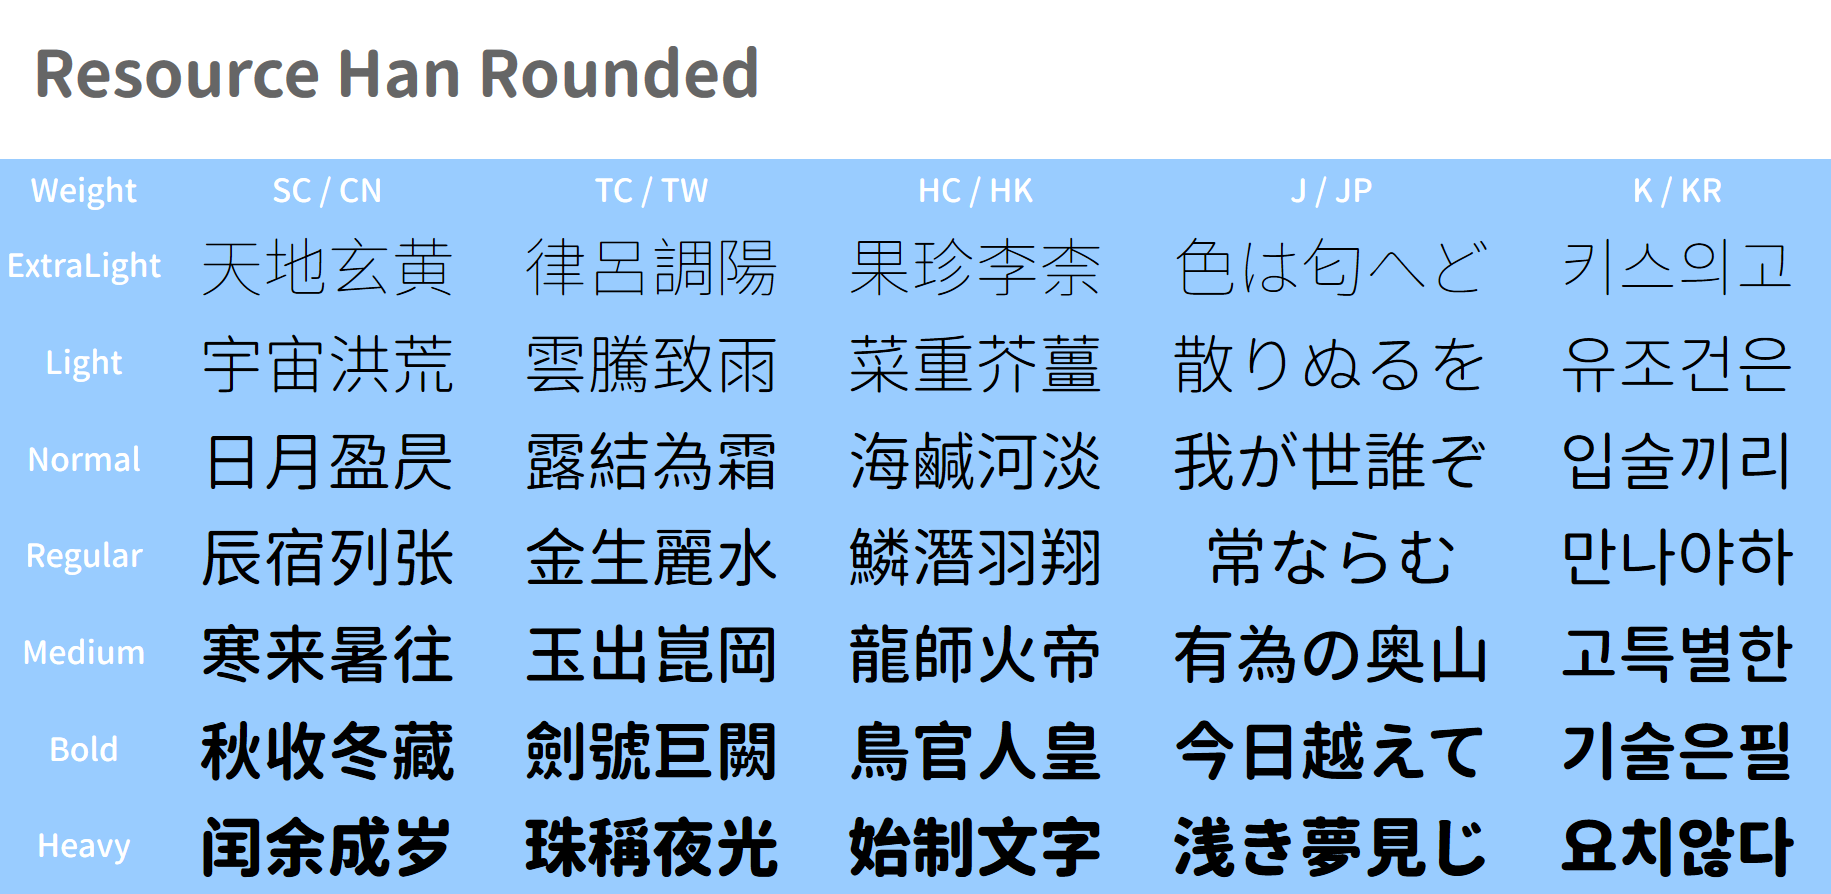 Resource-Han-Rounded1